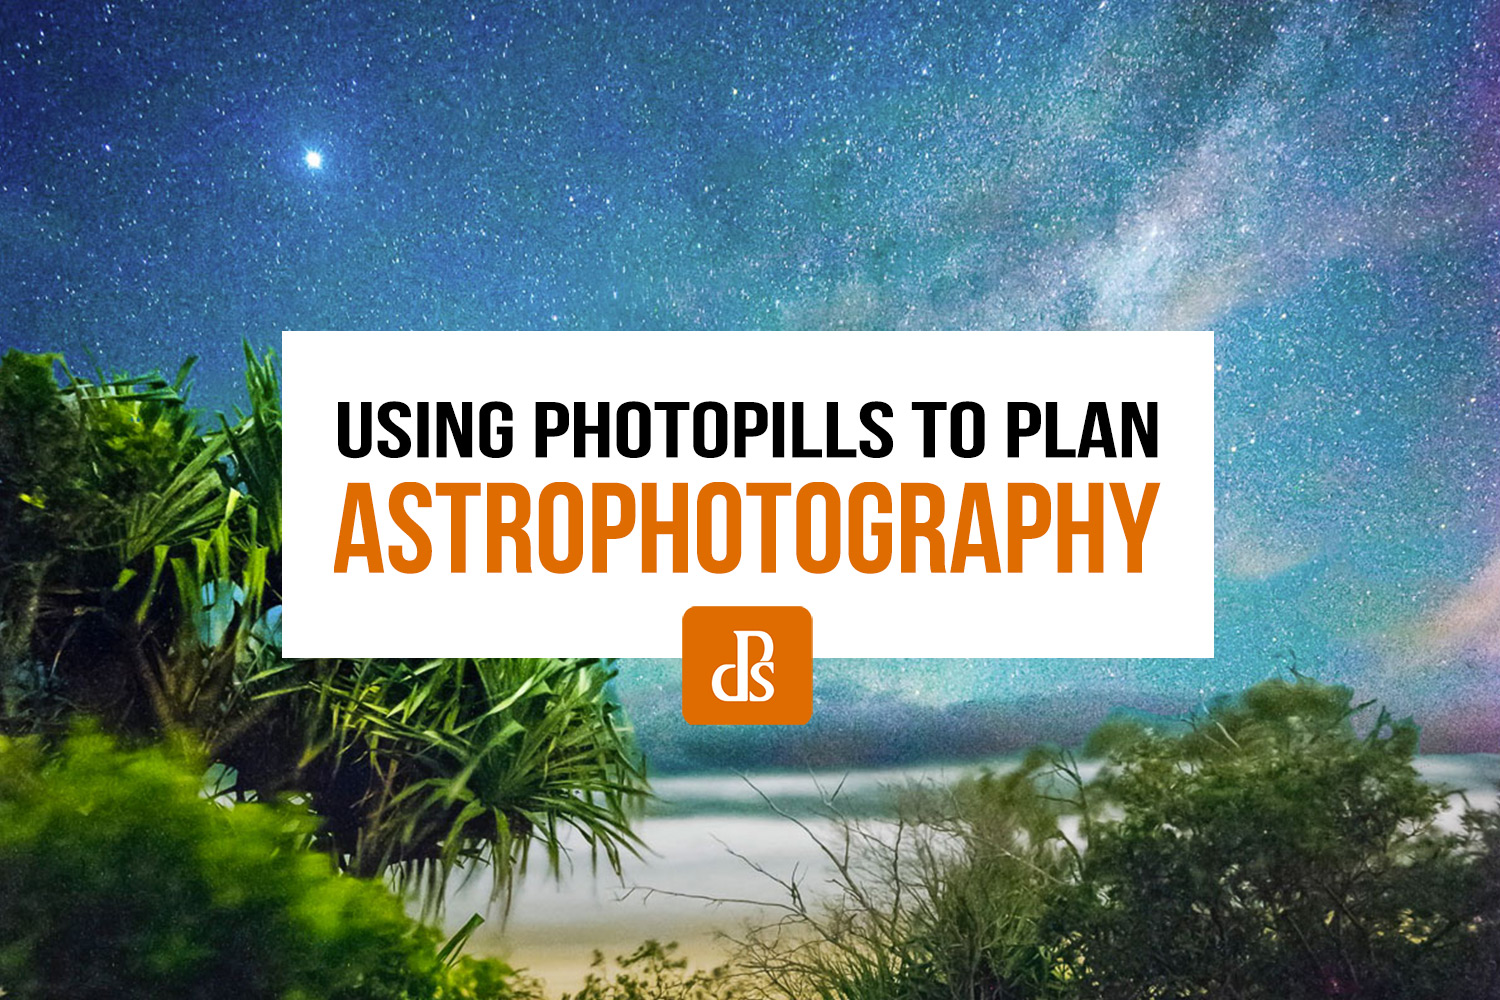 How To Plan Astrophotography With The Photopills App